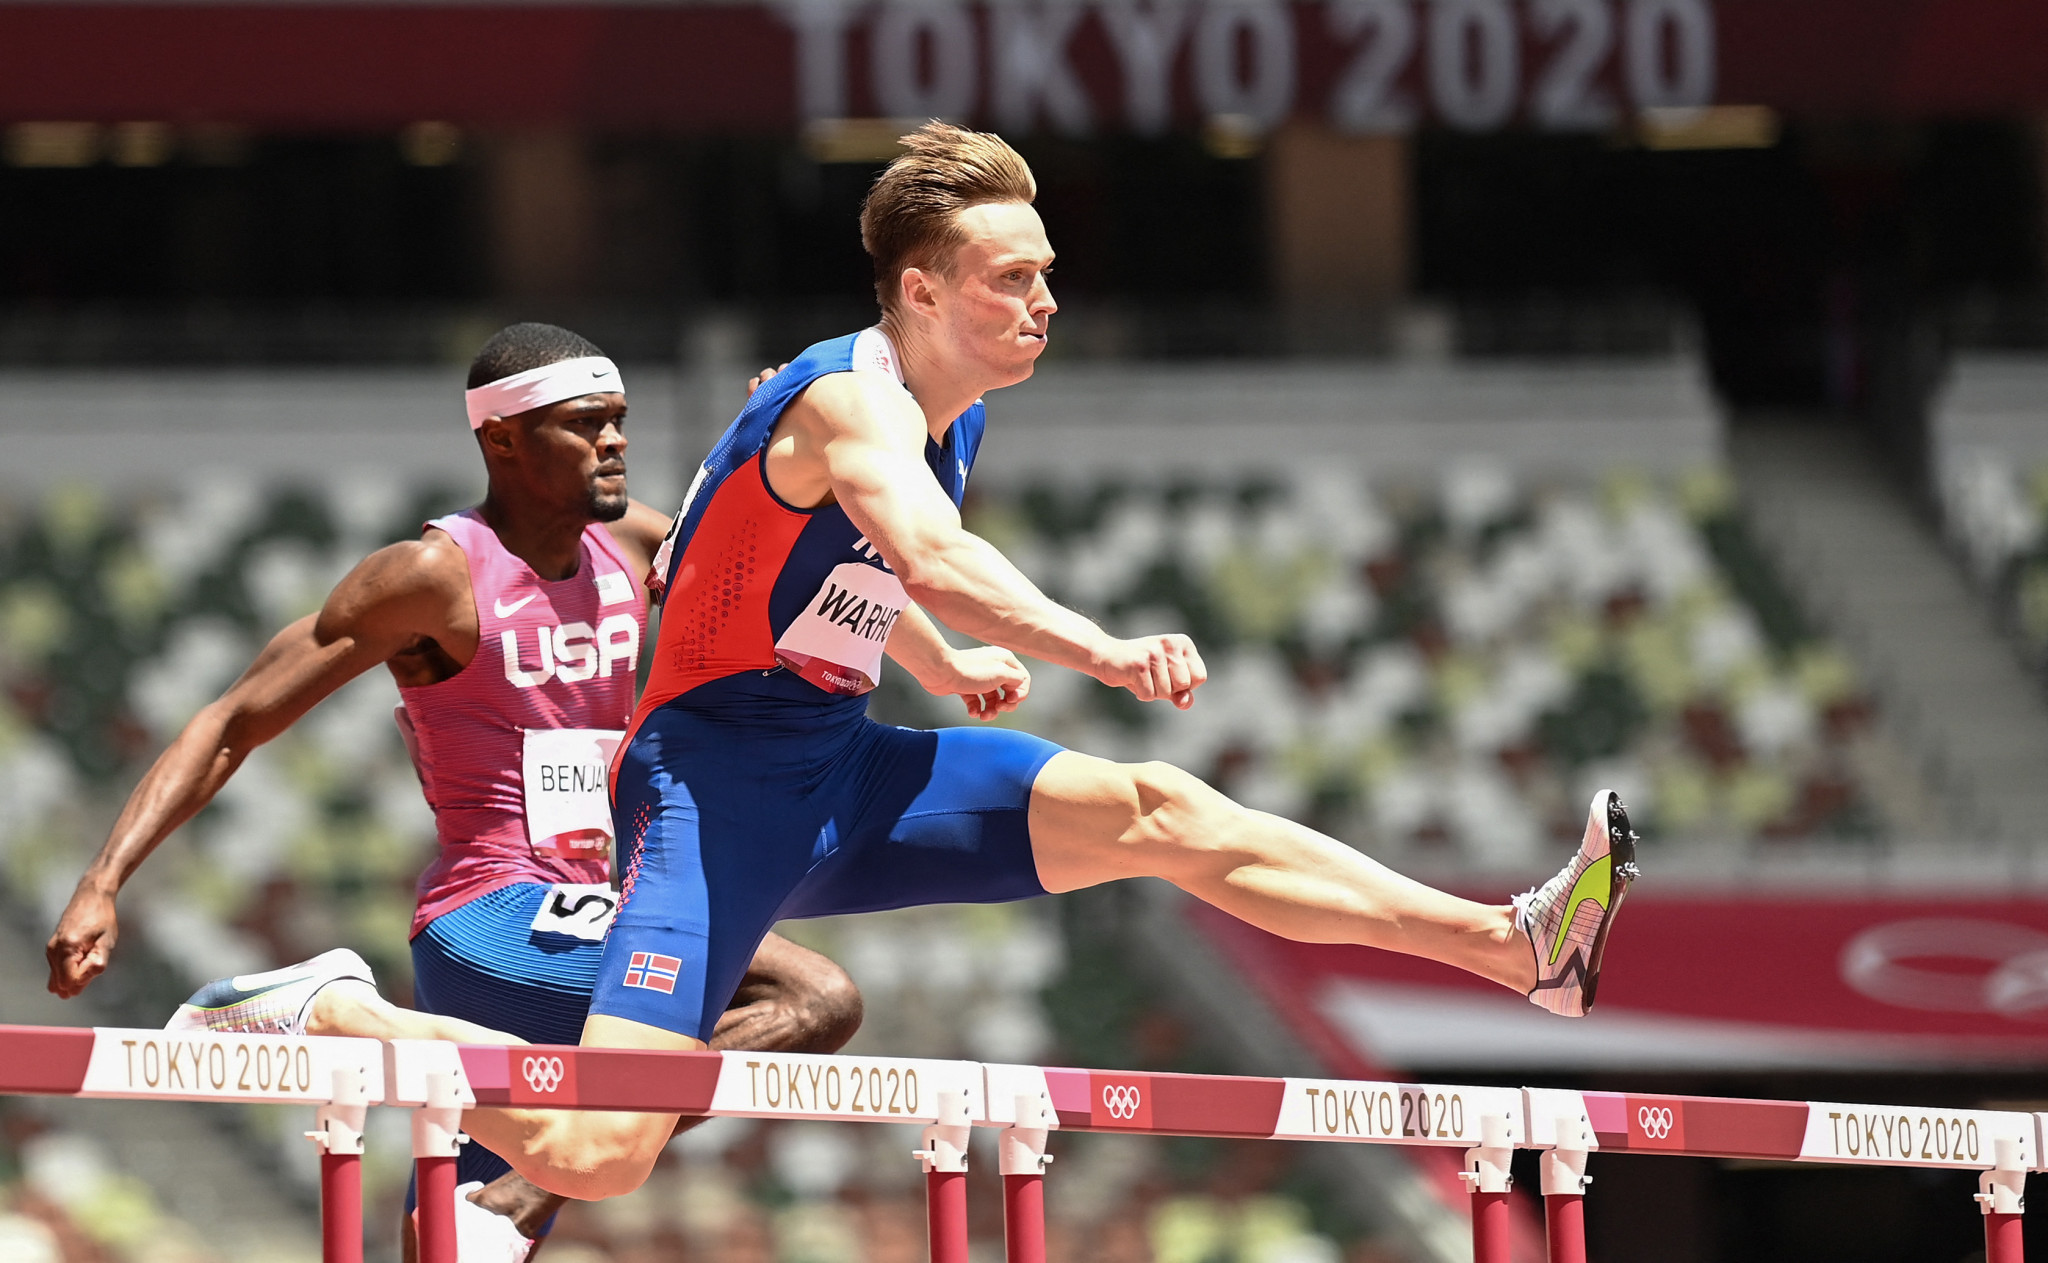 On the track, the day belonged to Norway's Karsten Warholm, who set a stunning 400m hurdles world record of 45.94sec - shaving 0.76 off his previous mark ©Getty Images